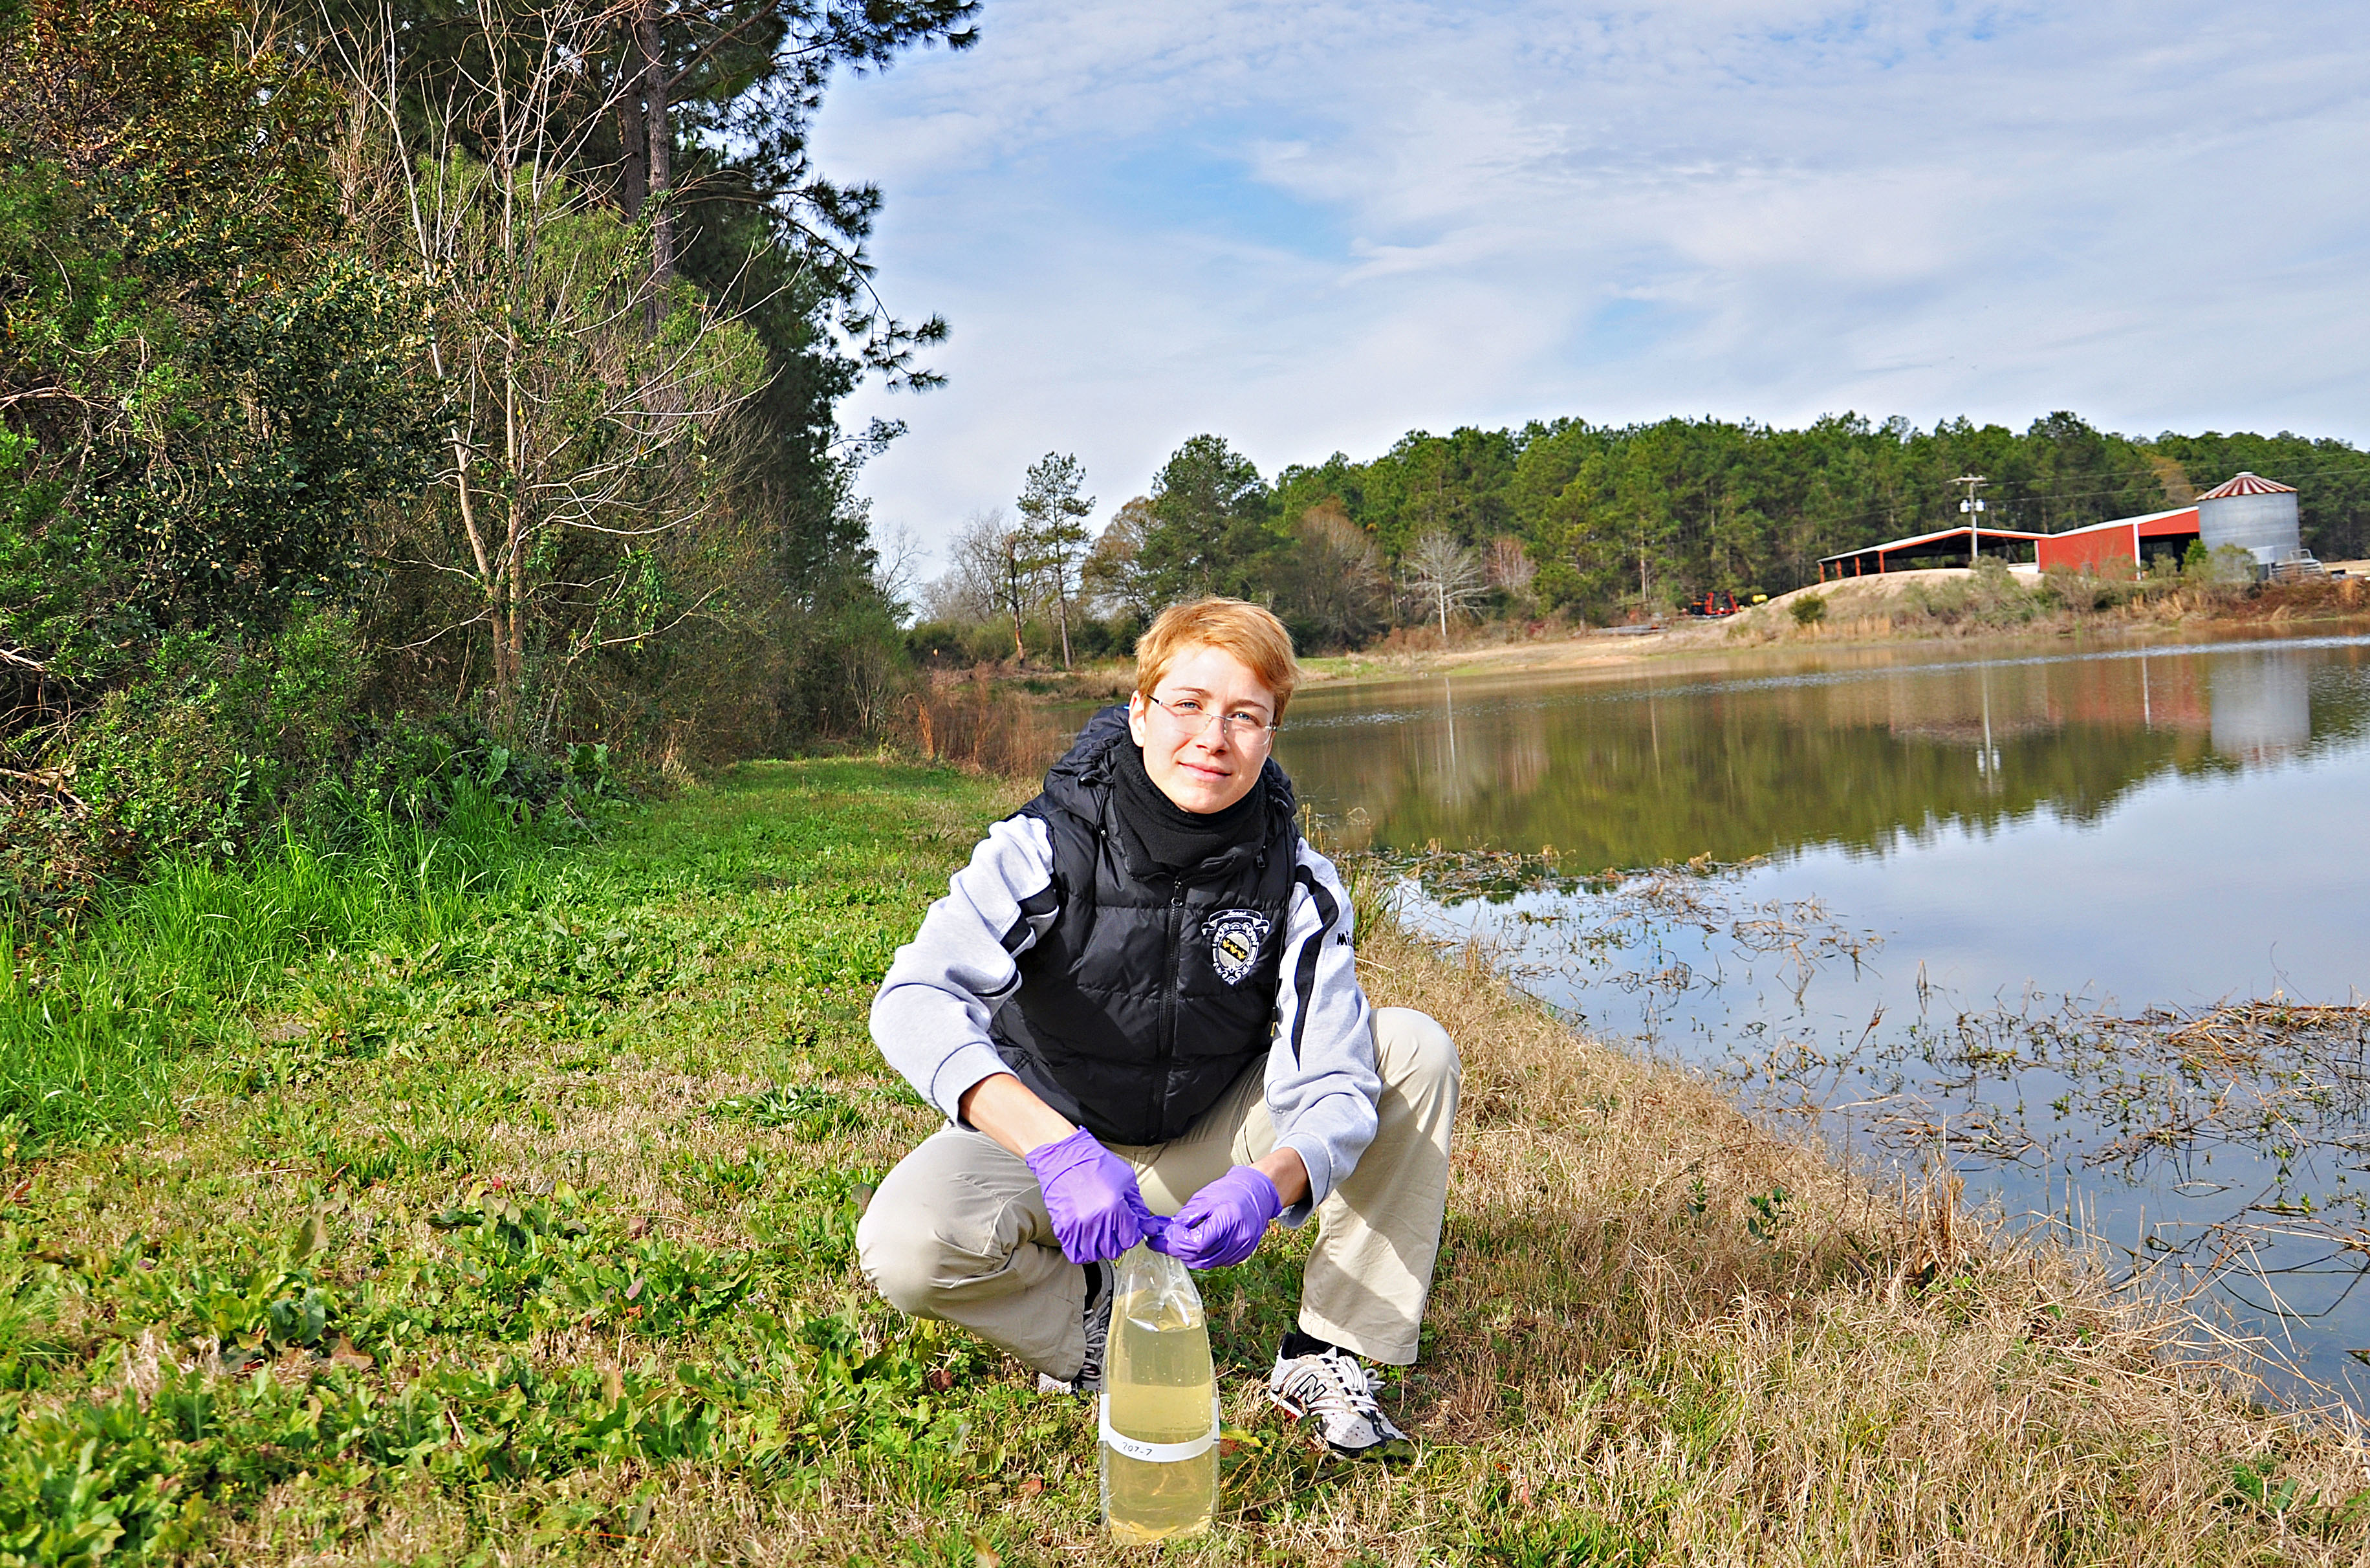 Camilla Borgato, a University of Padova currently working at UGA's Tifton Campus, is studying sampling strategies to track food borne pathogens in irrigation water. She's studying in the United States through the Trans Atlantic Precision Agricultural Consortium.